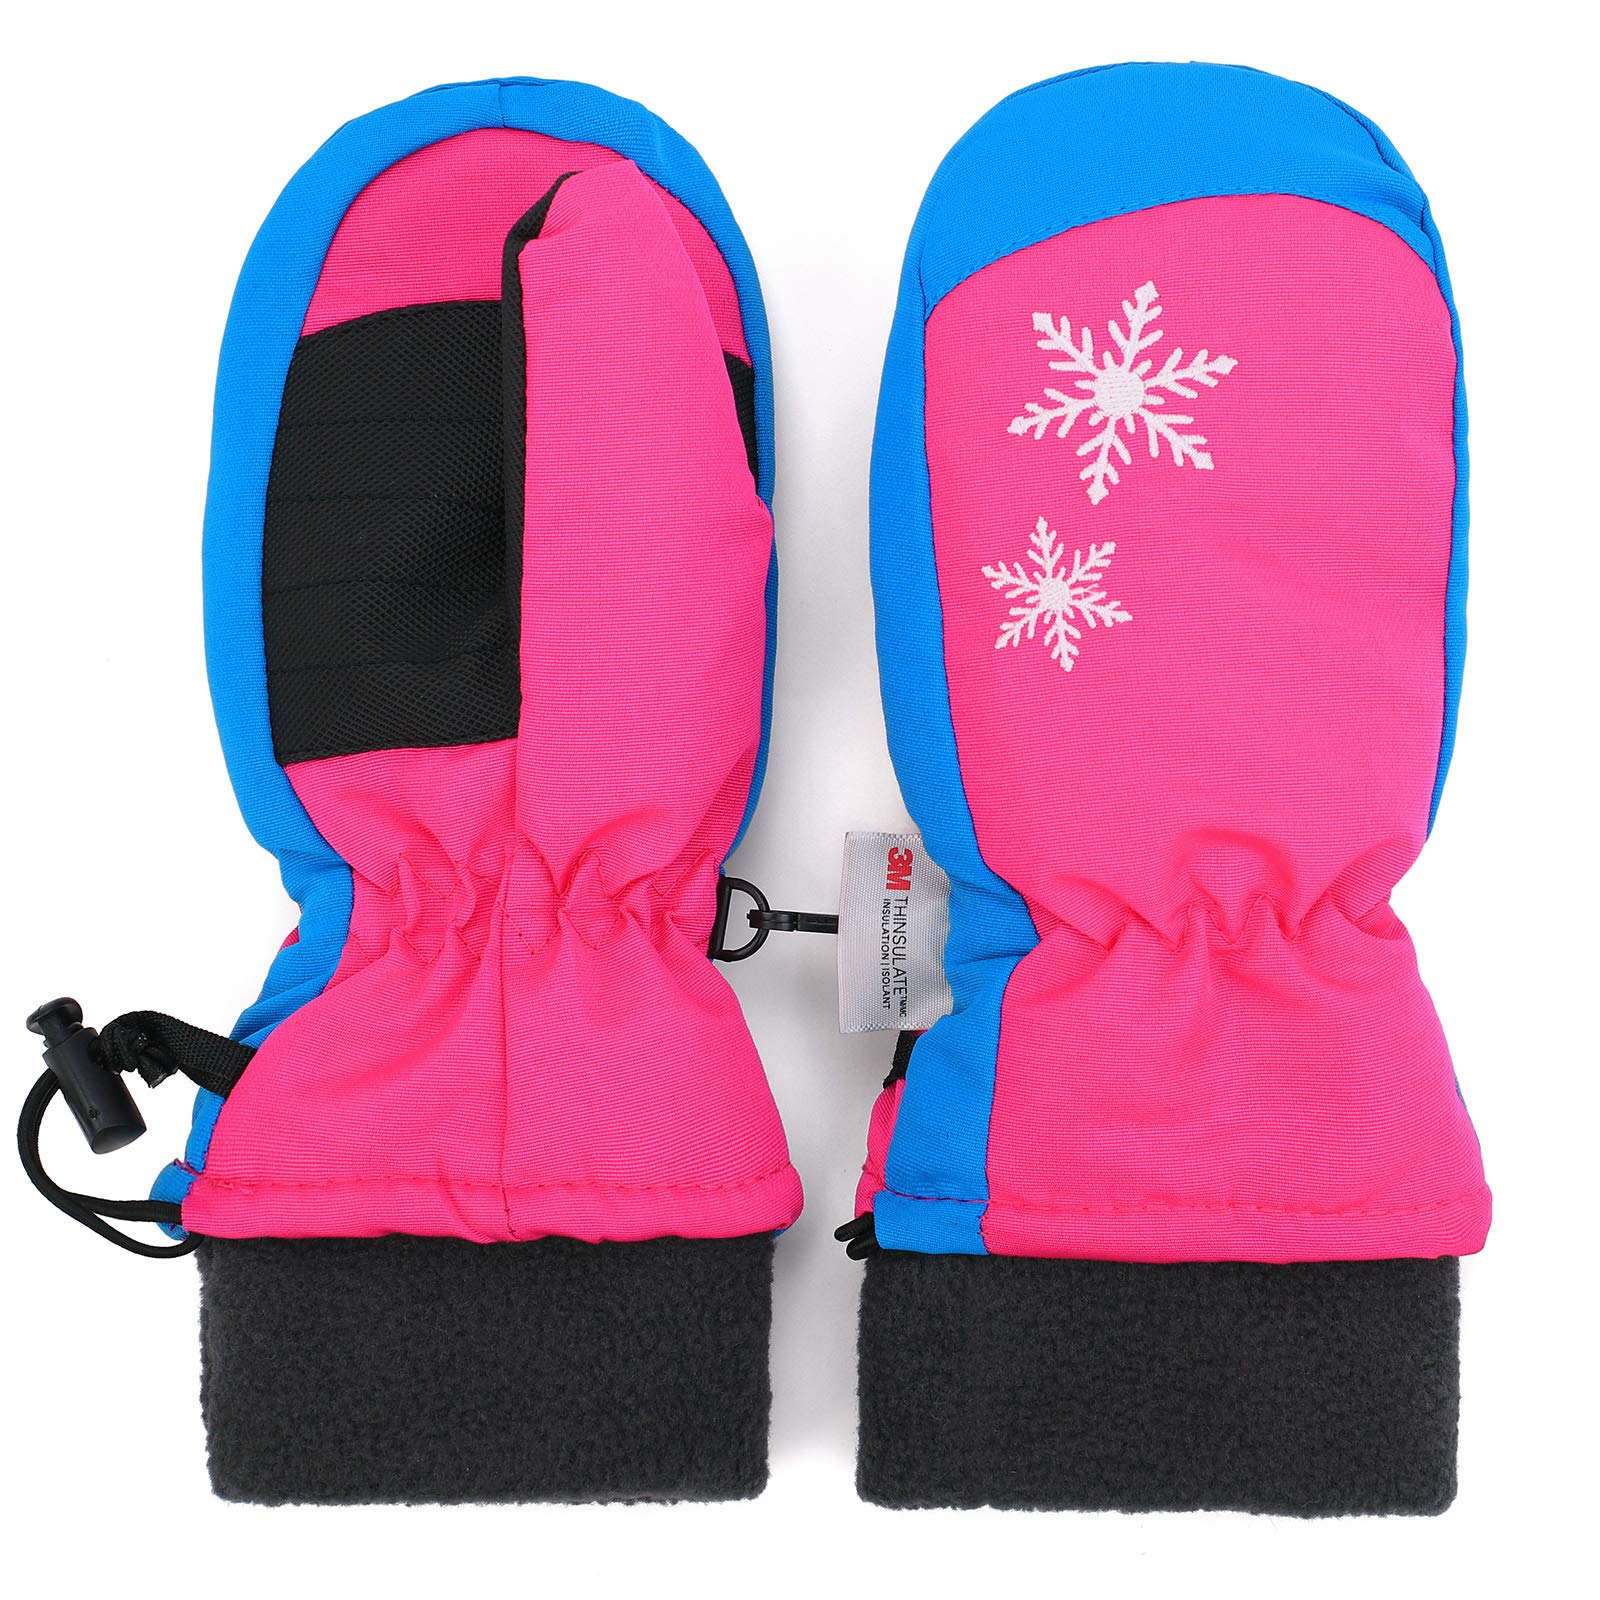 Flammi Kids Ski Mittens Waterproof Thinsulate Lined Mittens Snowflakes Embroidery (Magenta, M / 5-8yrs)